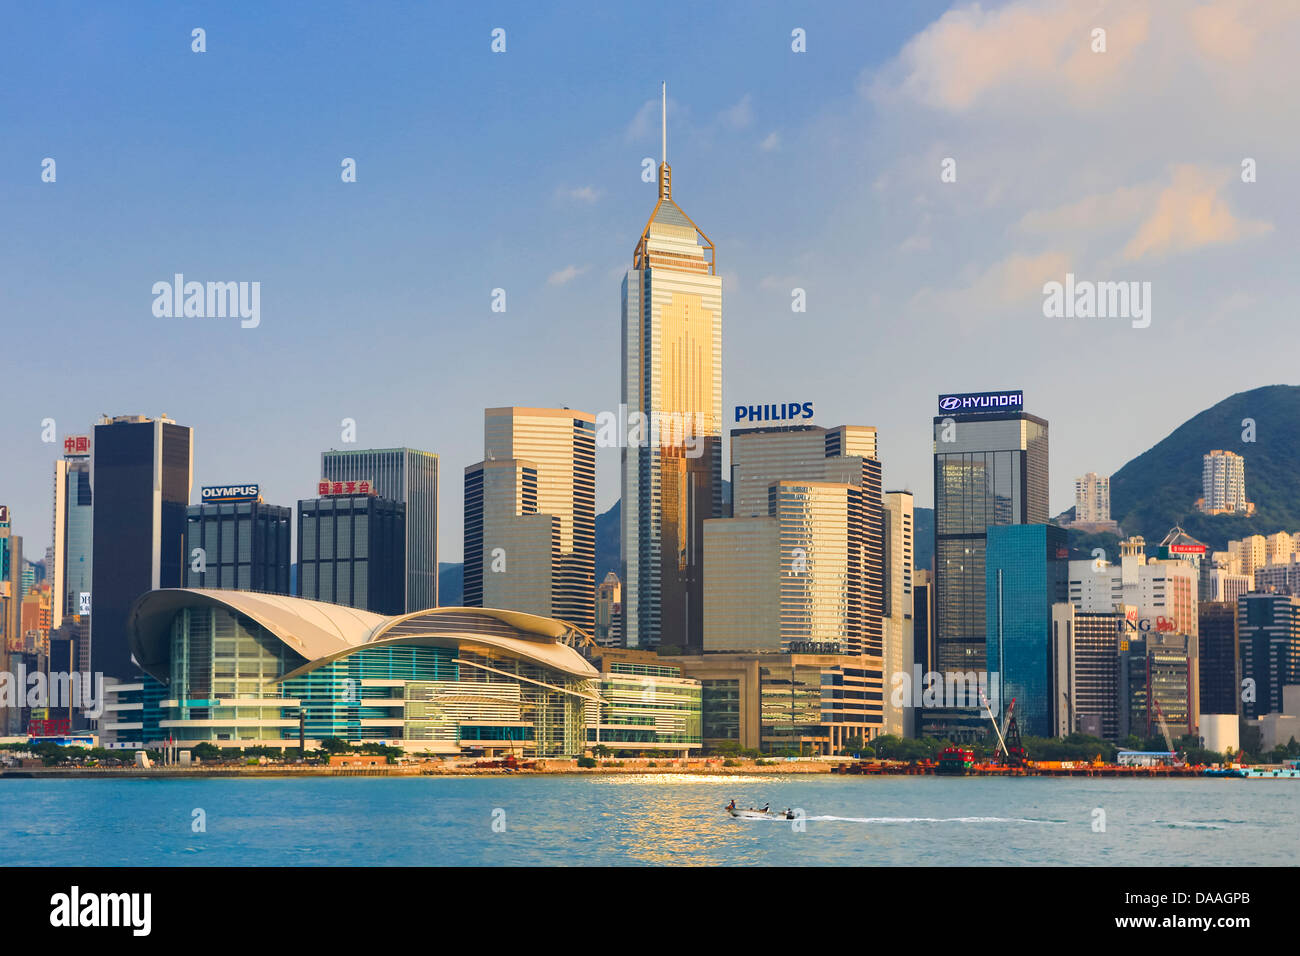 Hong Kong, China, Asia, City, Wanchai, Causeway, Districts, Central Plaza, Building, architecture, skyline, skyscrapers, - Stock Image